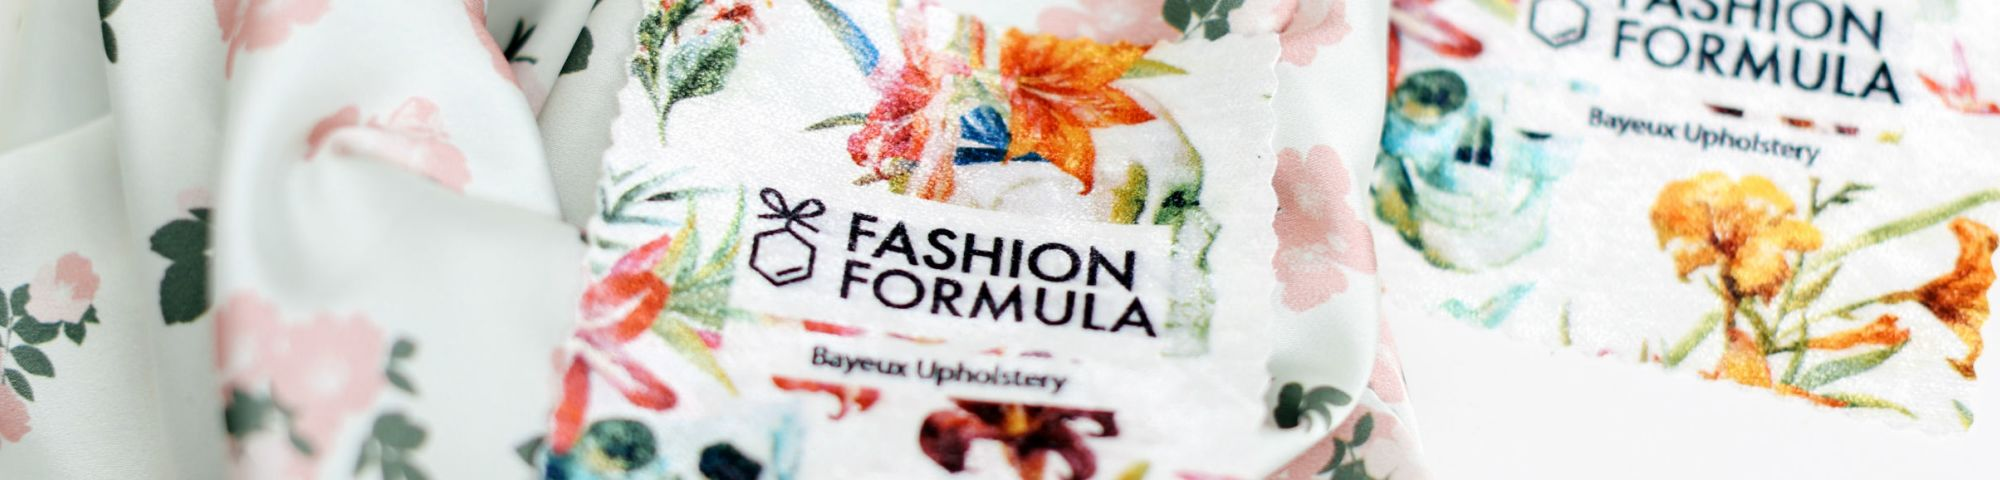 Piece of colourful material on a table with 'Fashion Formula' printed on the label